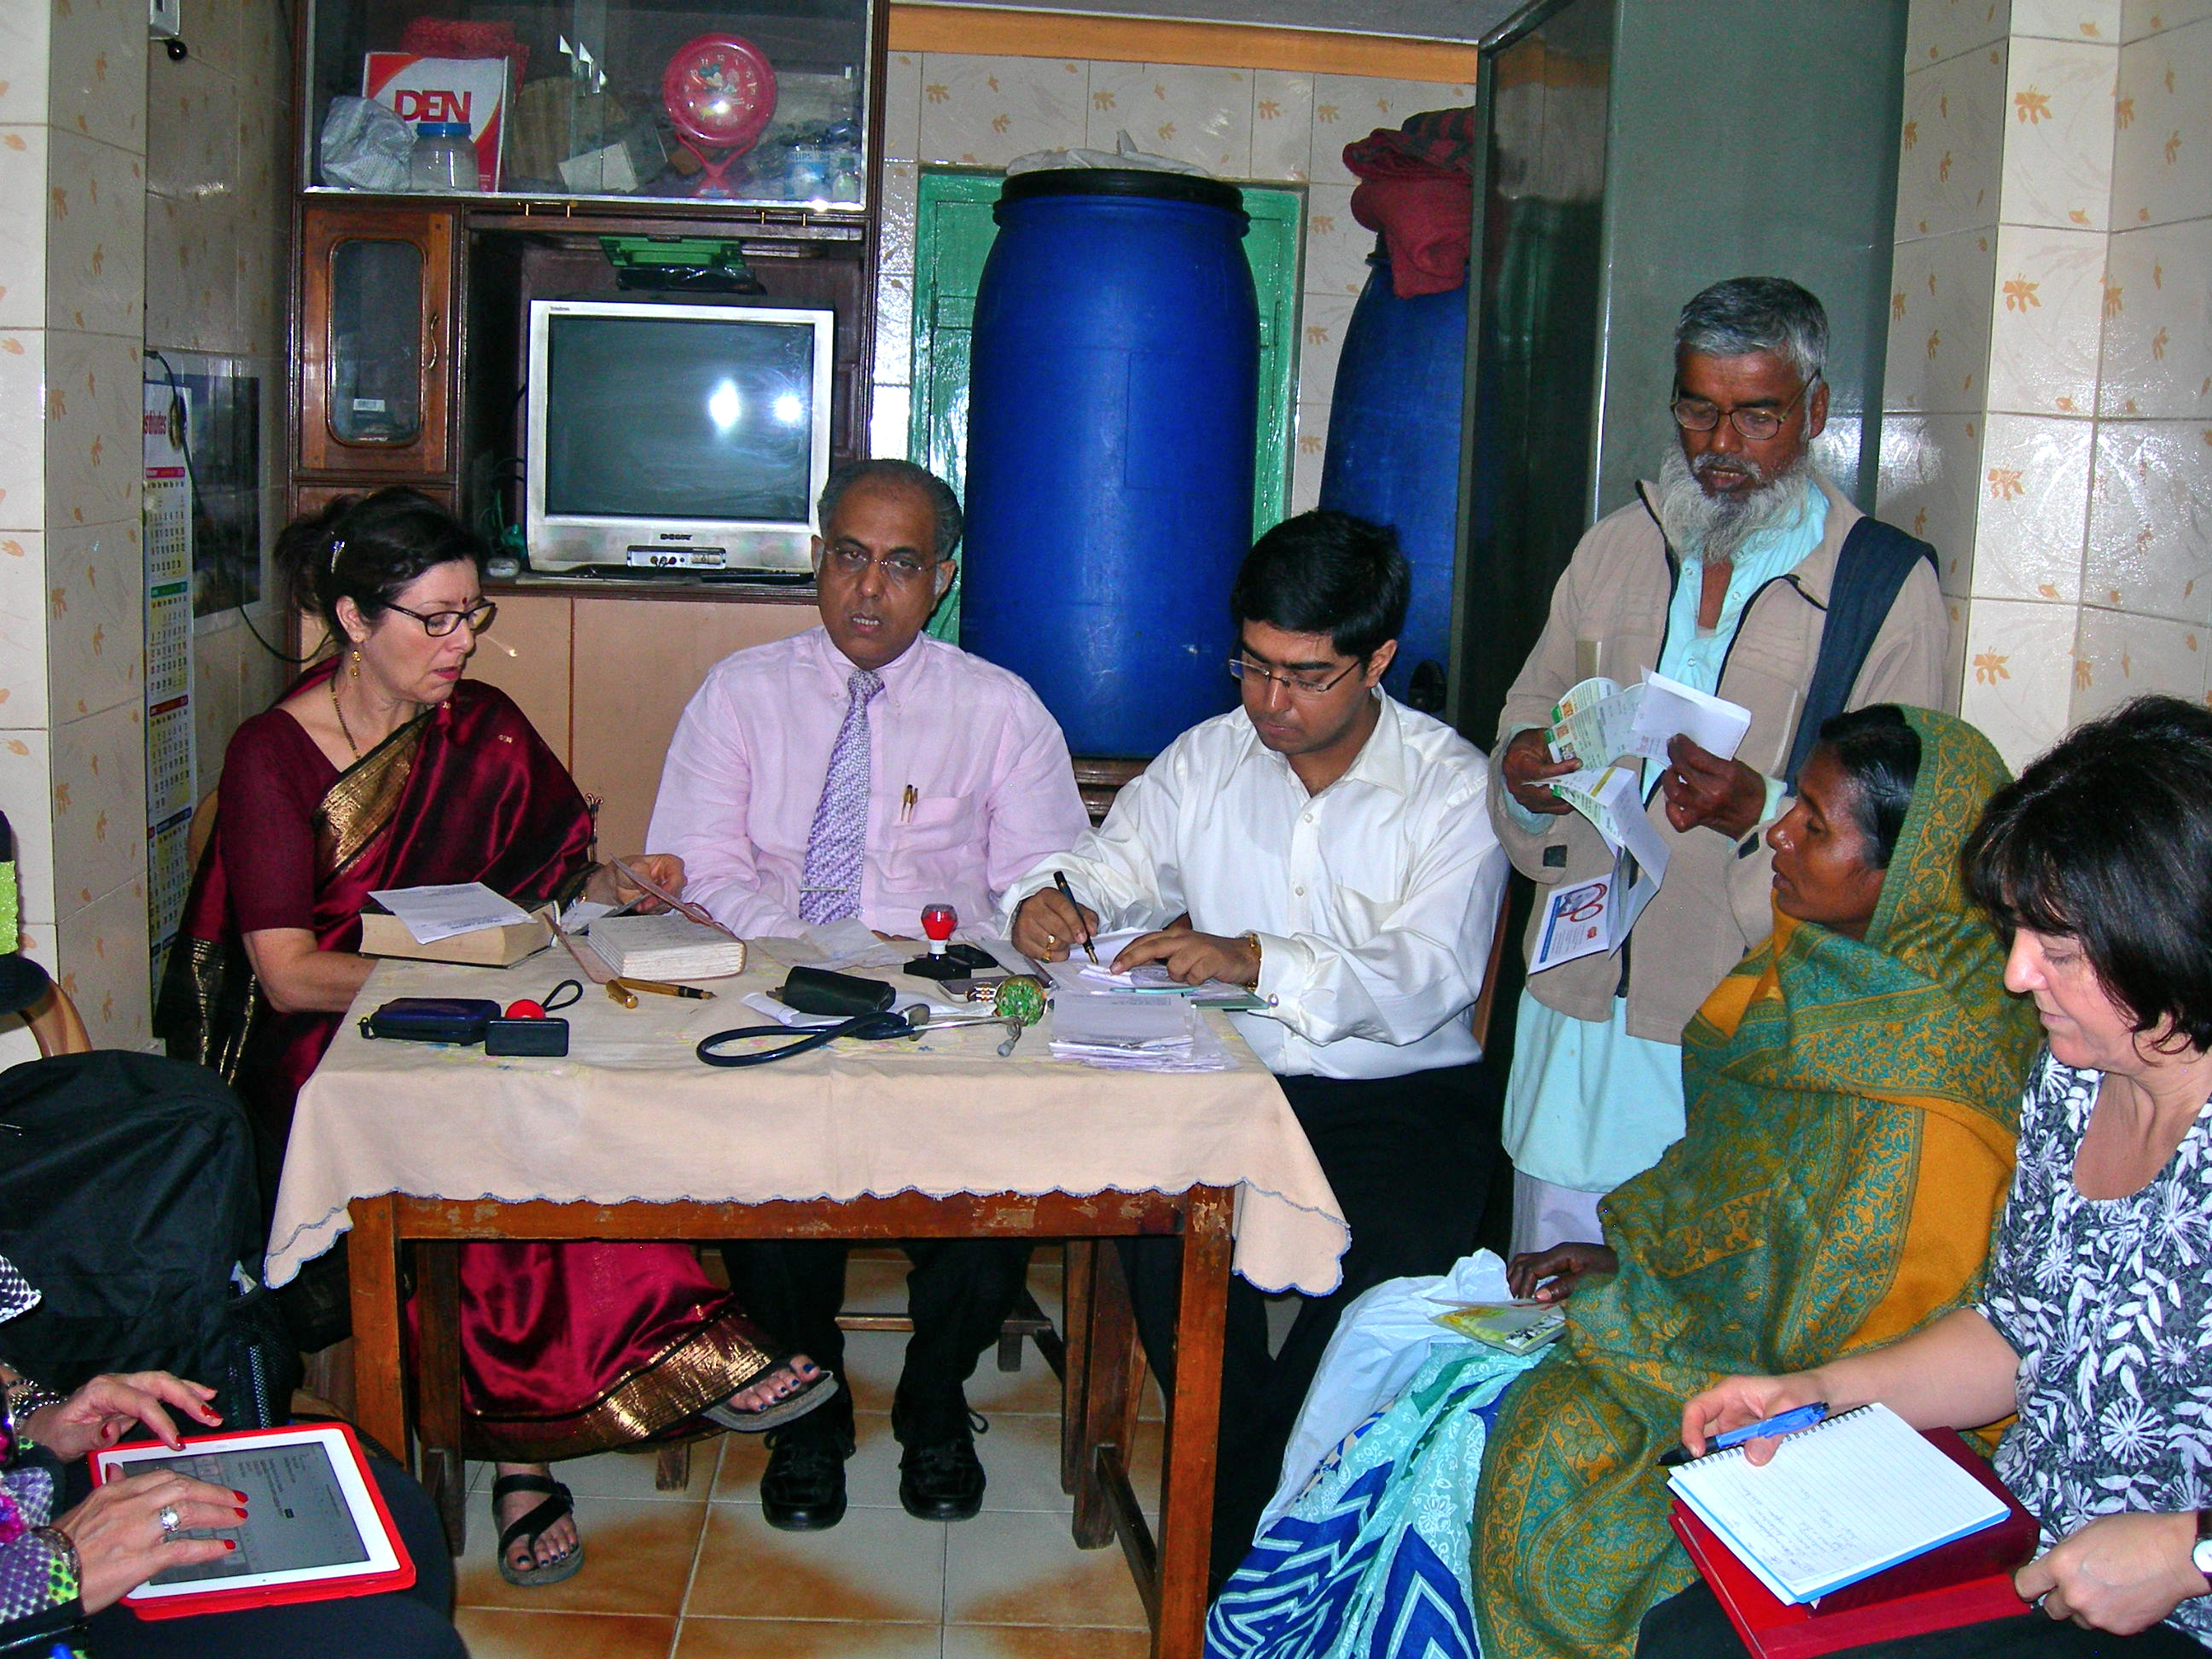 Janet, Subrata & Saptarshi in fast prescribing session at Slum Clinic